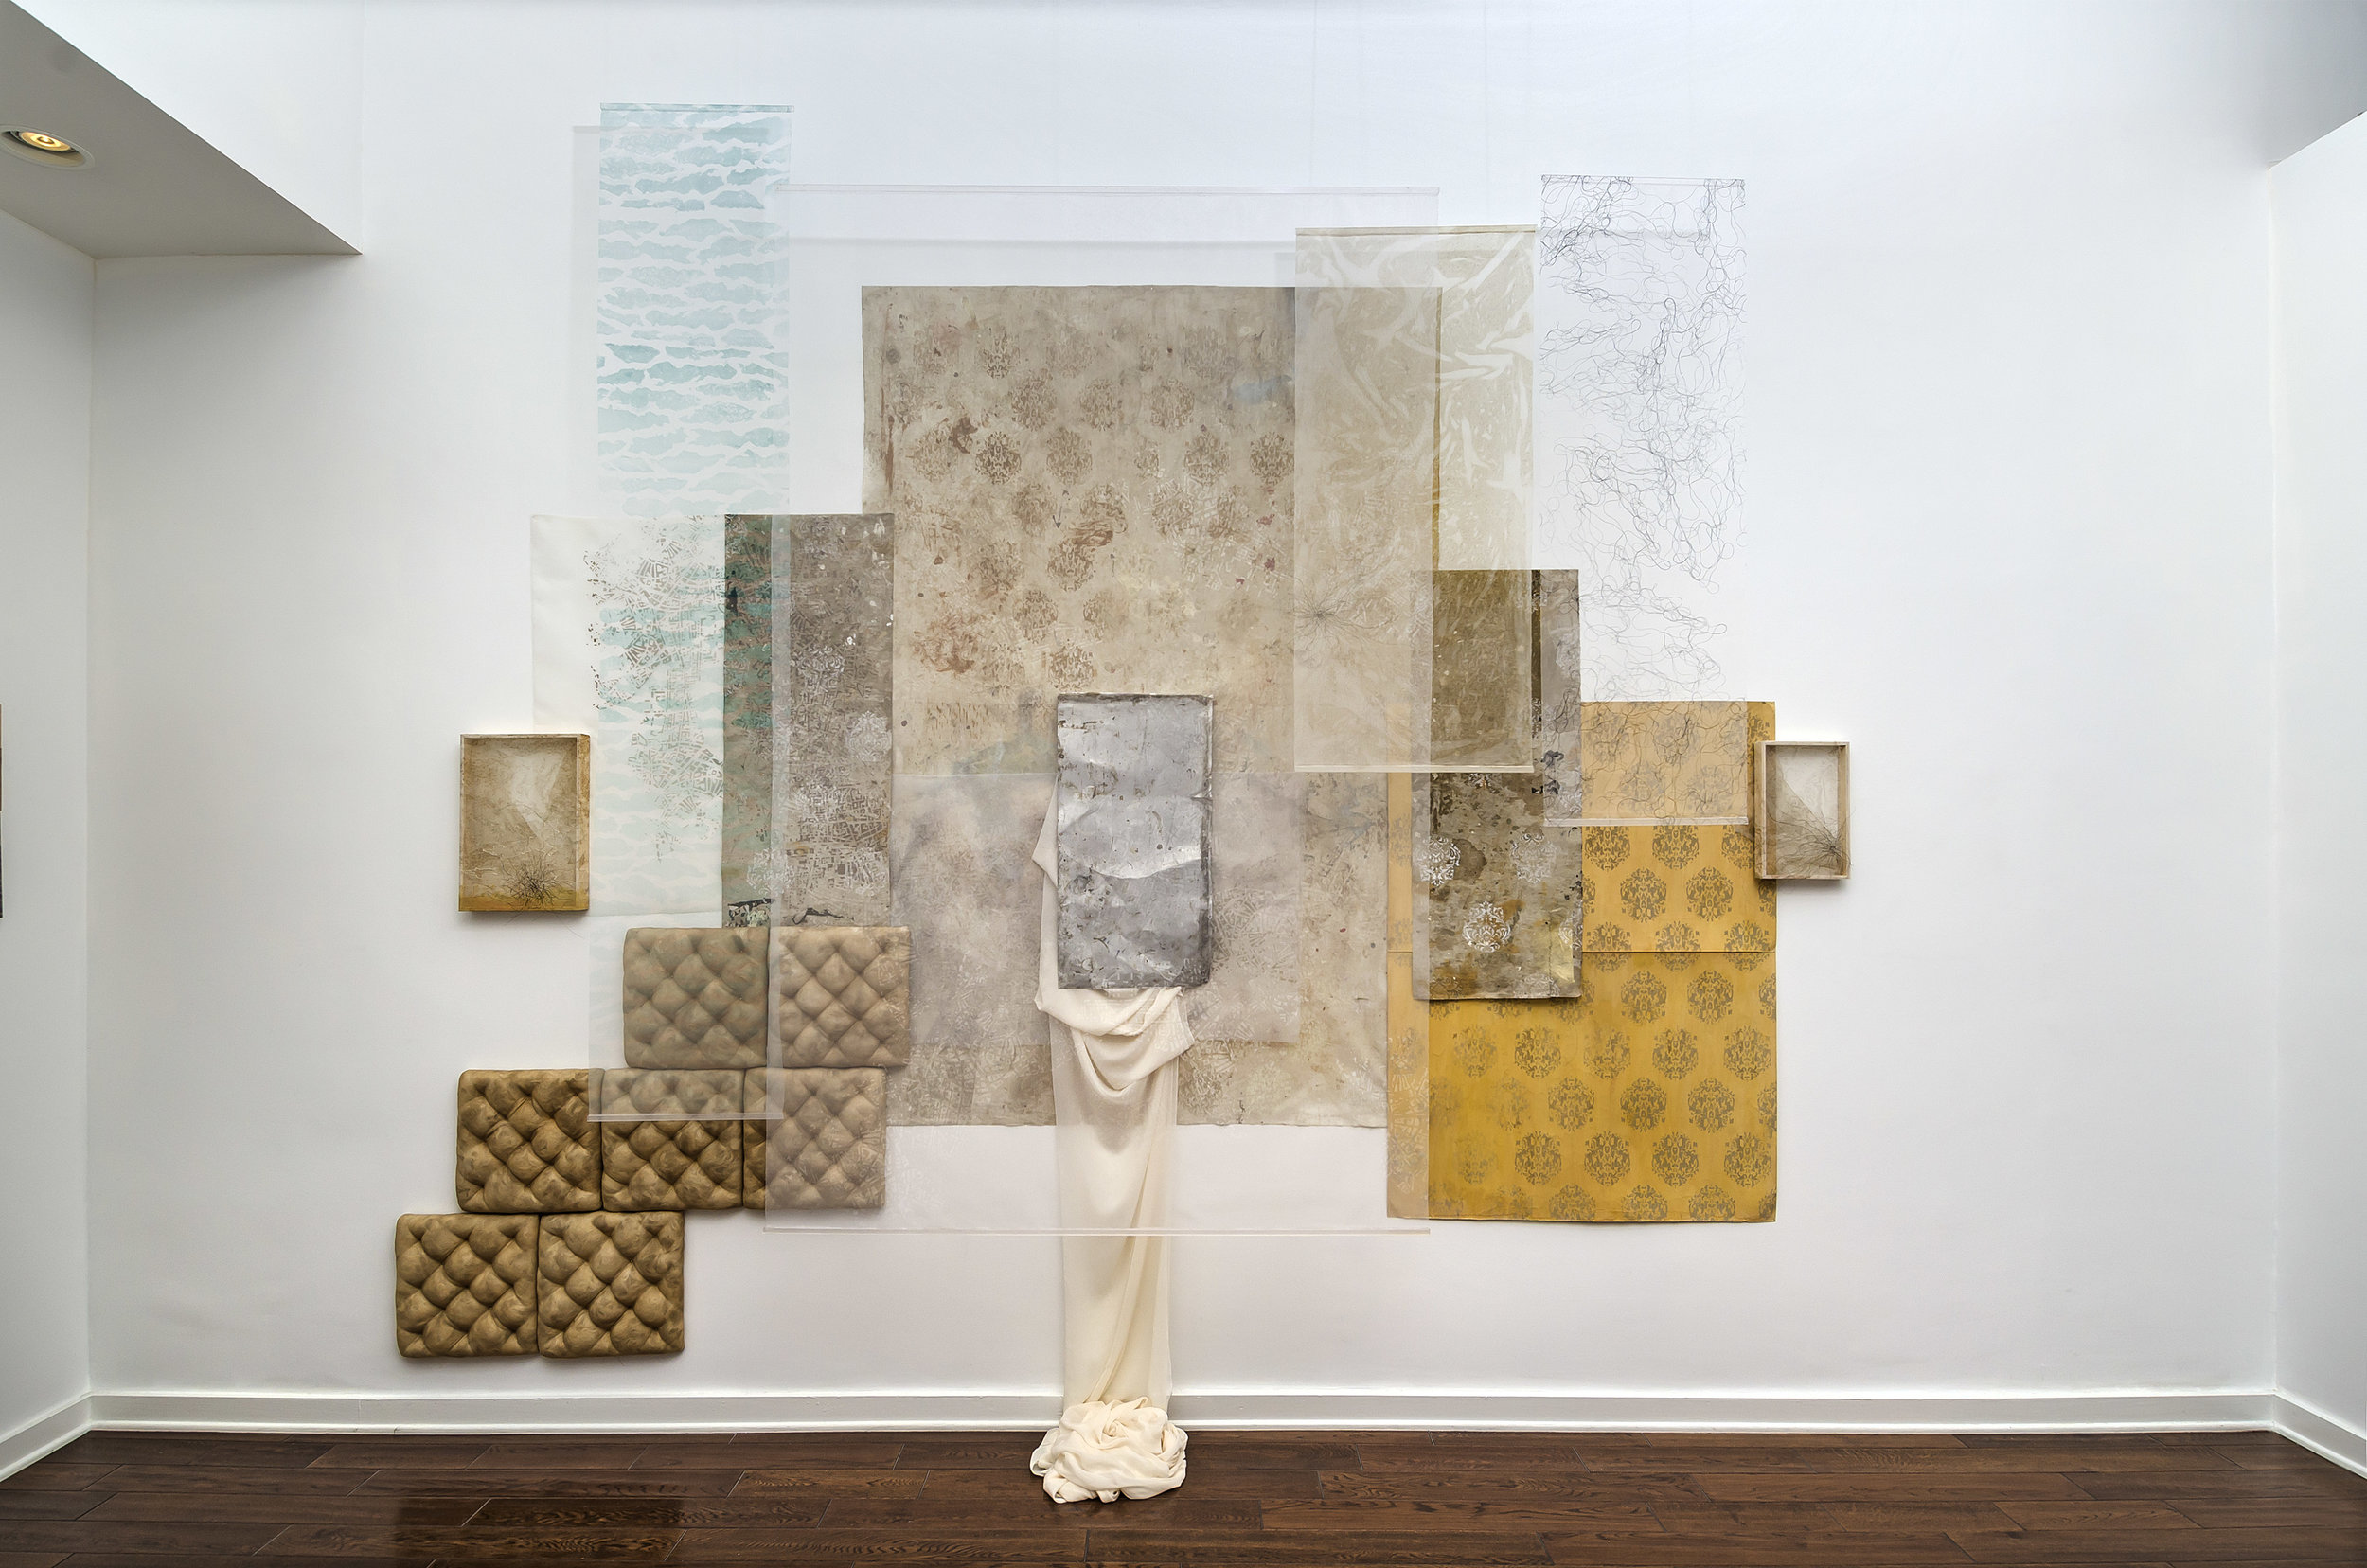 Victoria May   And the refinement of their decline , 2015 screen printed organza, found paper and drop cloth, stitched horse hair, ink-jet printed dropcloth, aluminum plate, silk chiffon, alpaca fur, horse hair, stained silk organza, beads, foam, wood 144 x 180 x 24 inches; 328.9 x 378.5 x 49.5 centimeters